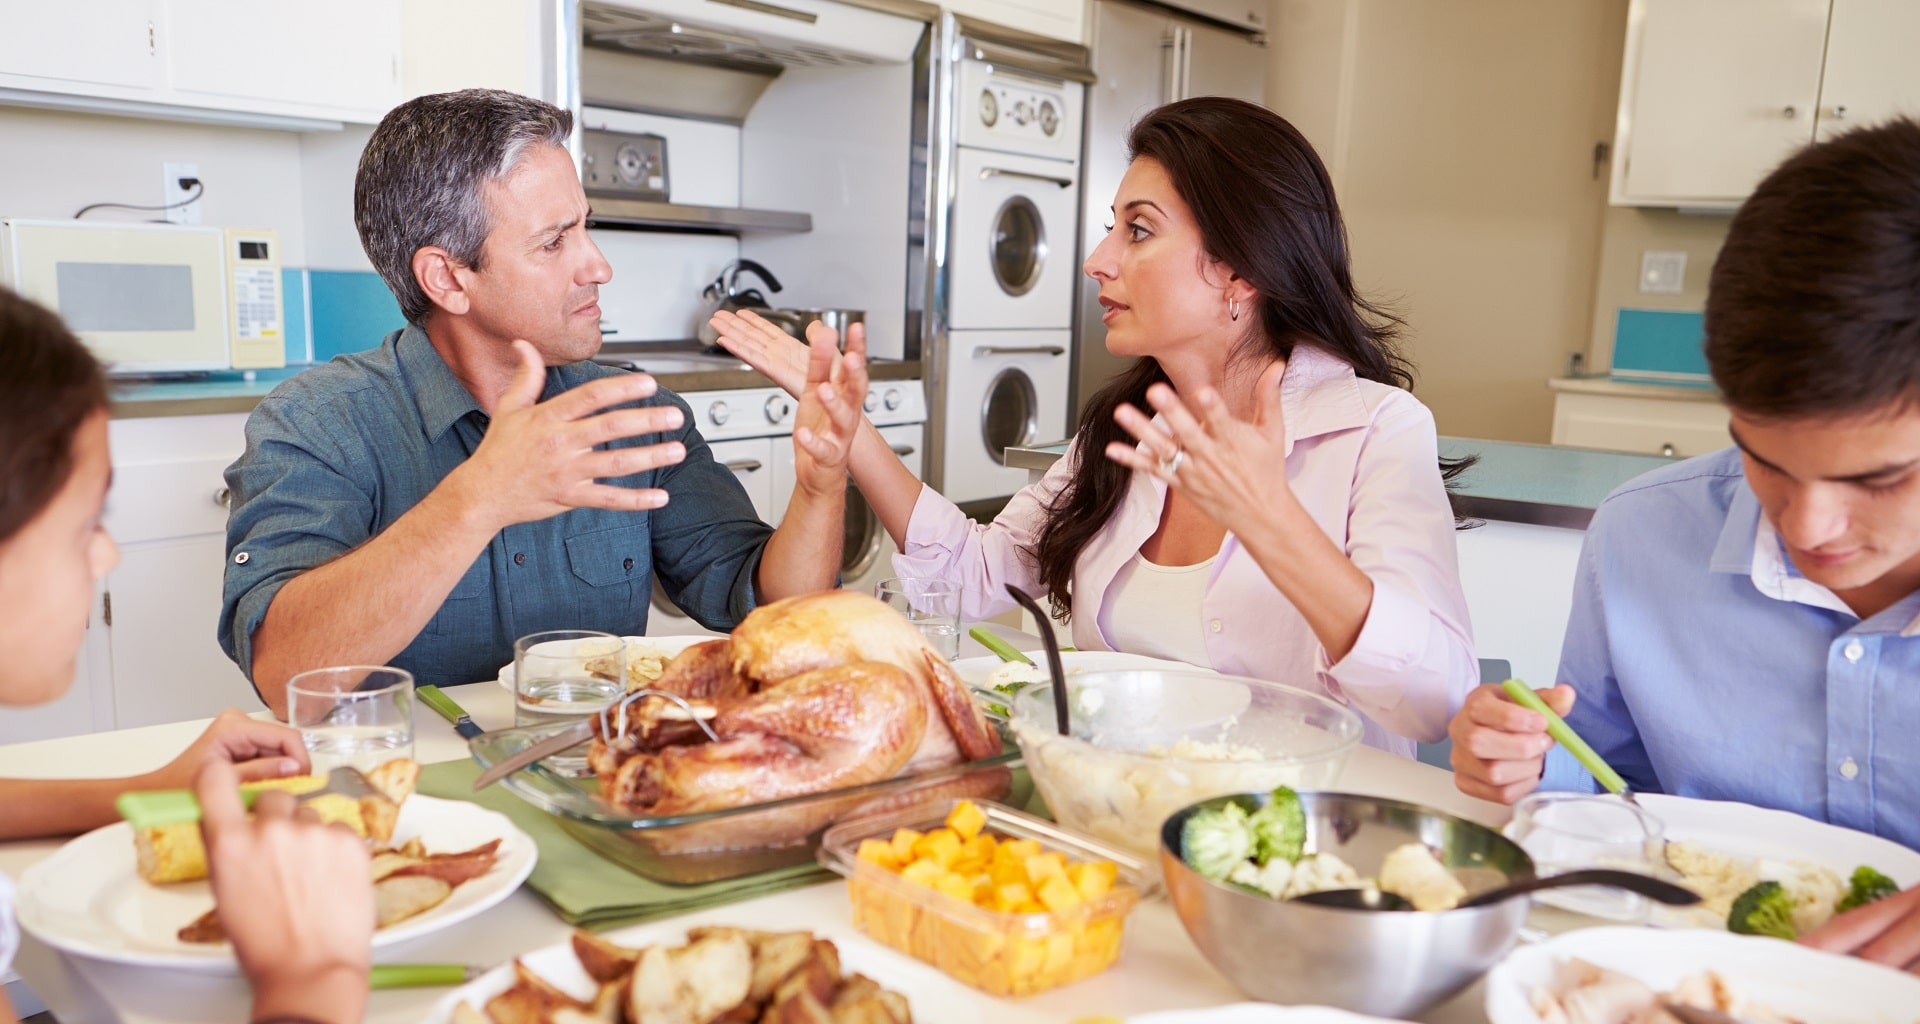 What to Do When You Don't Like Your Partner's Family